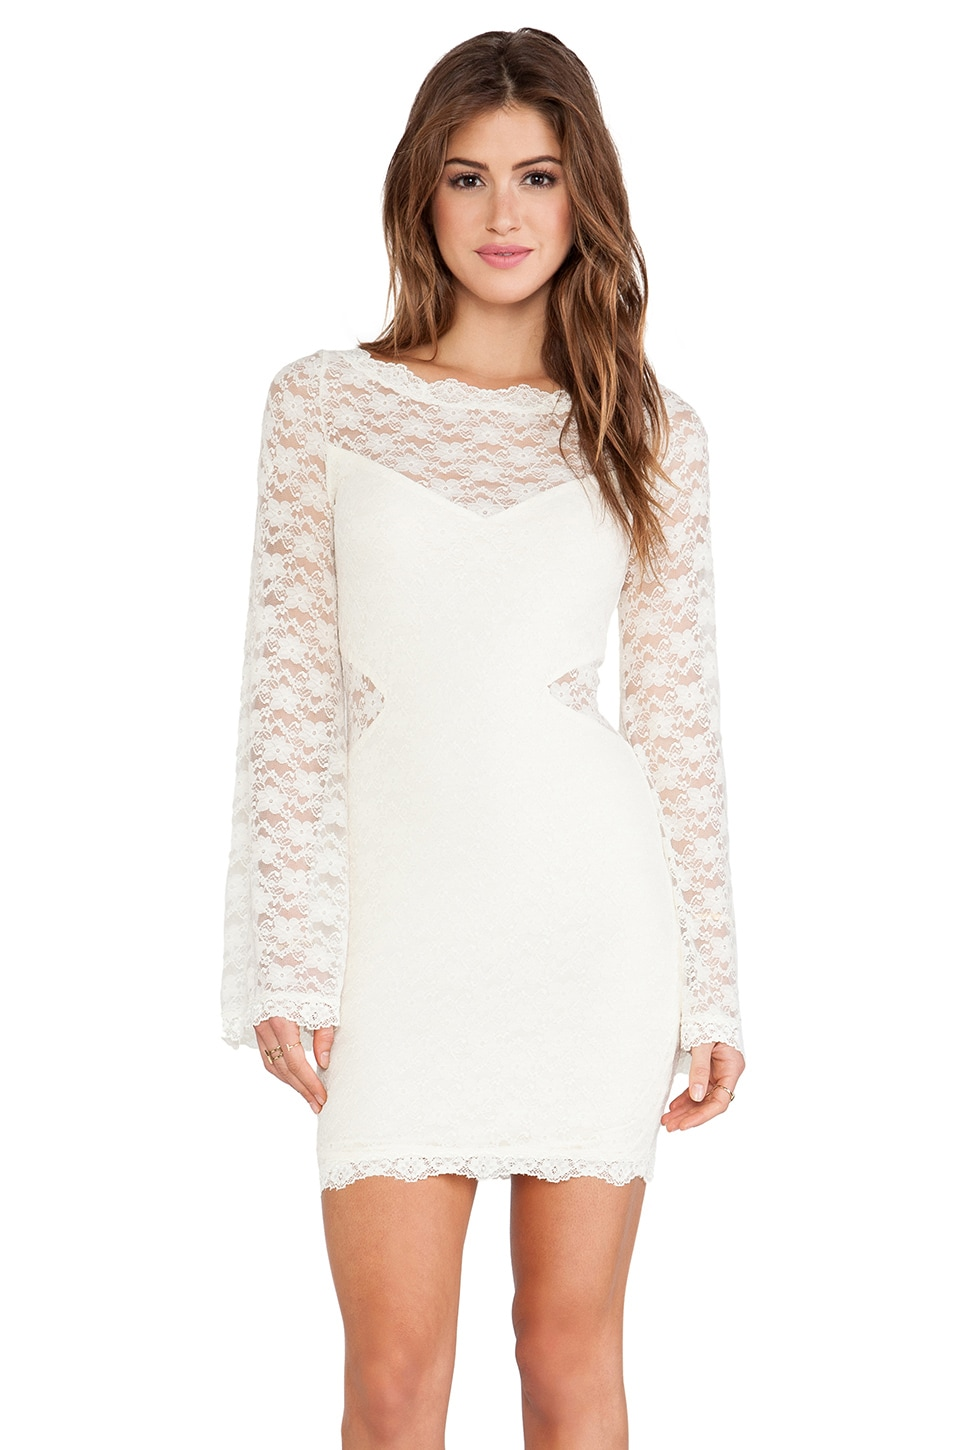 Free People Lovely In Lace Bodycon Dress in Cream